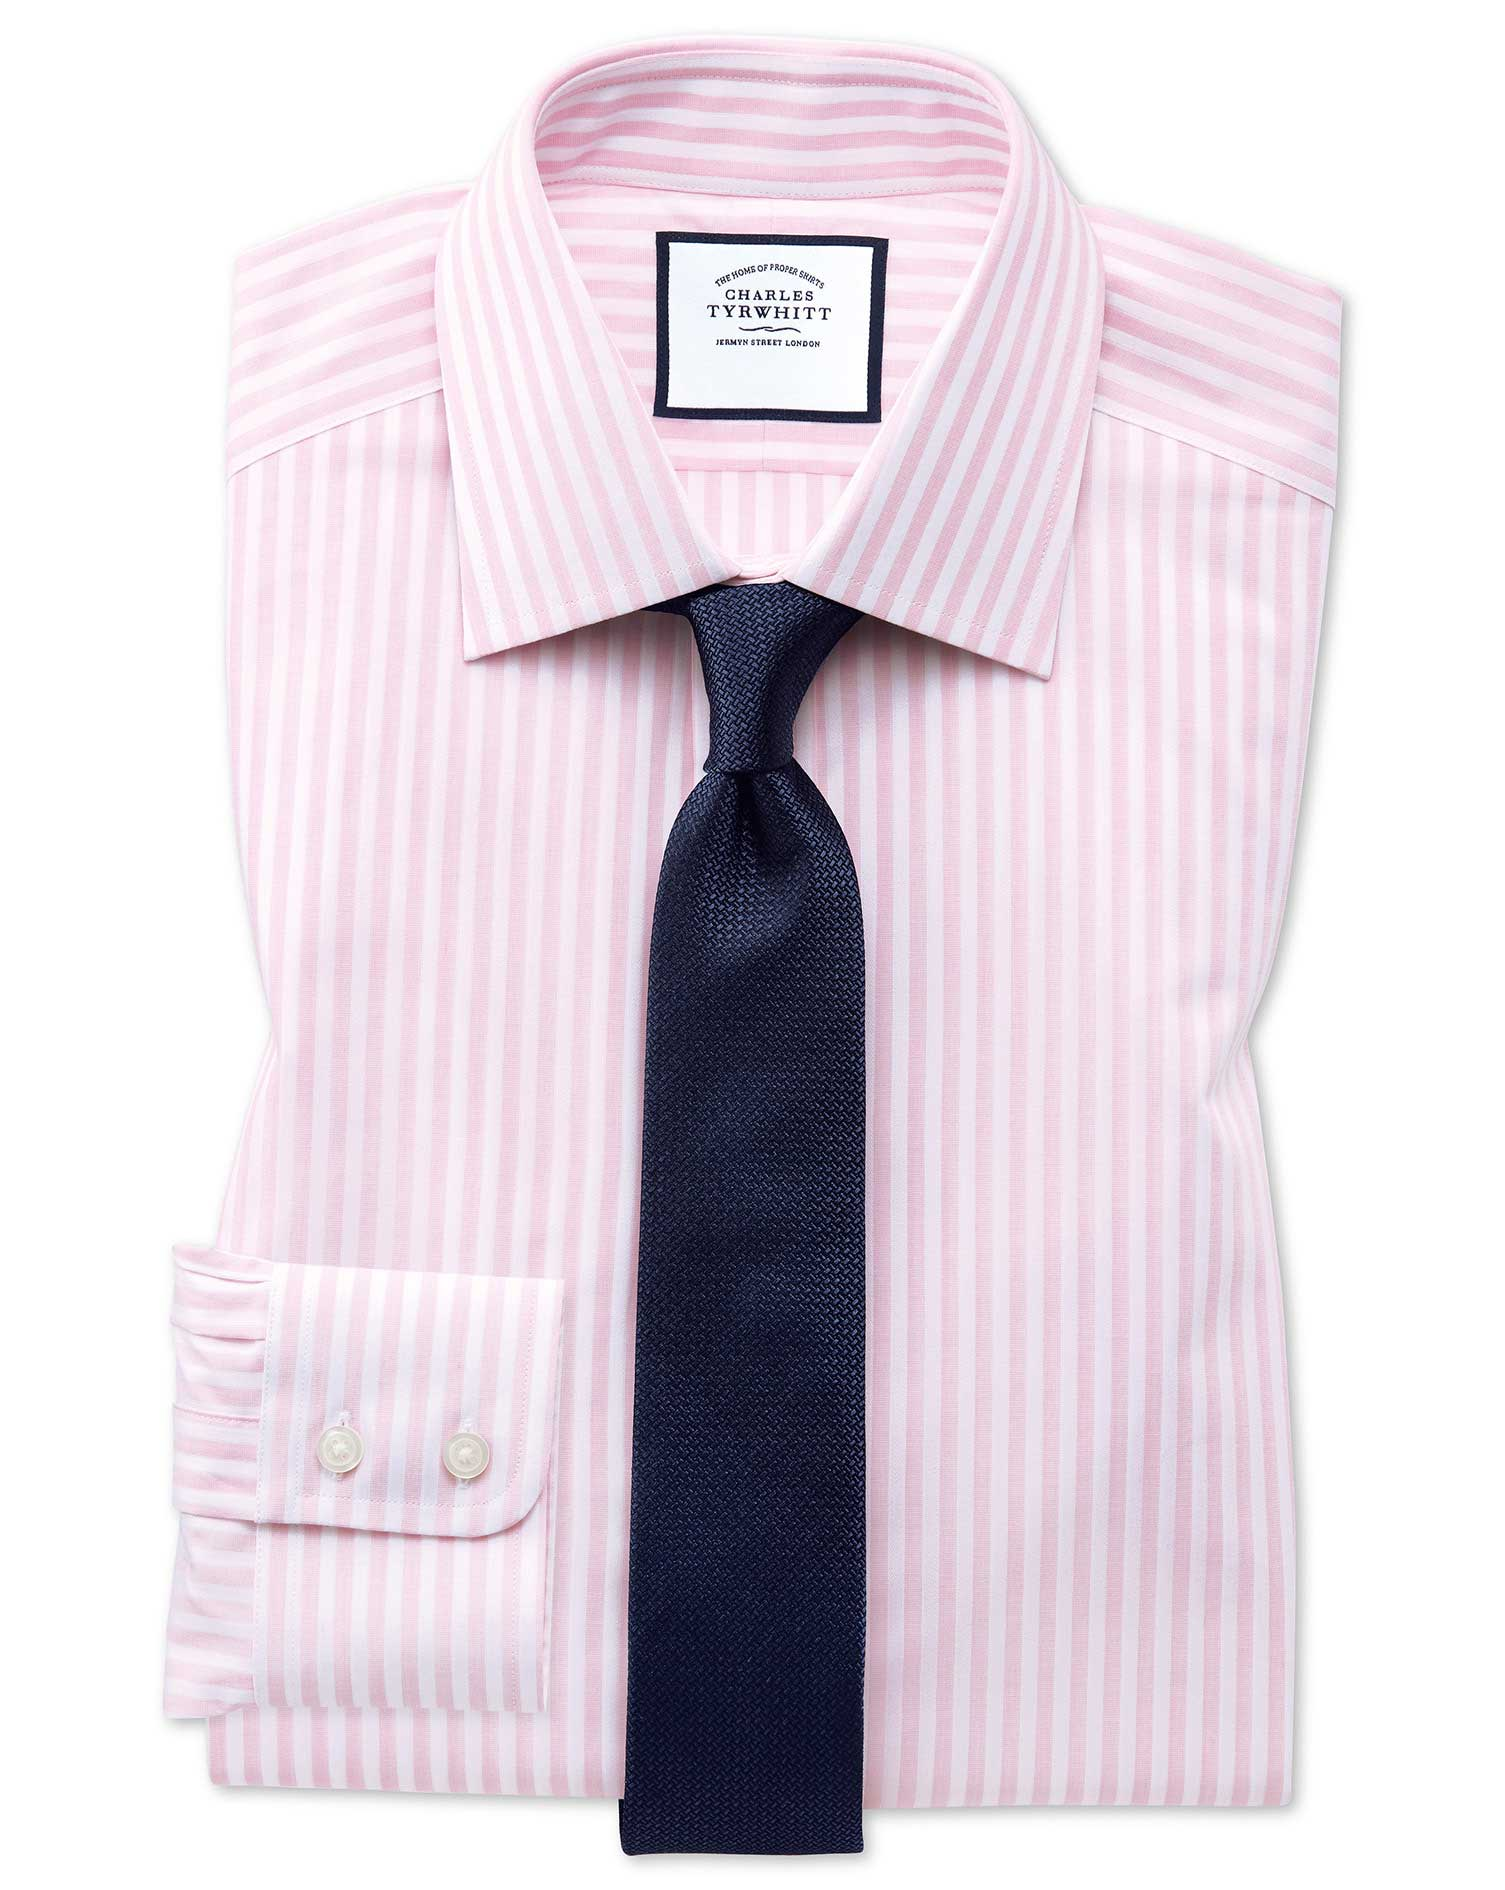 Extra Slim Fit Pink and White Dobby Textured Stripe Cotton Formal Shirt Single Cuff Size 16/35 by Ch